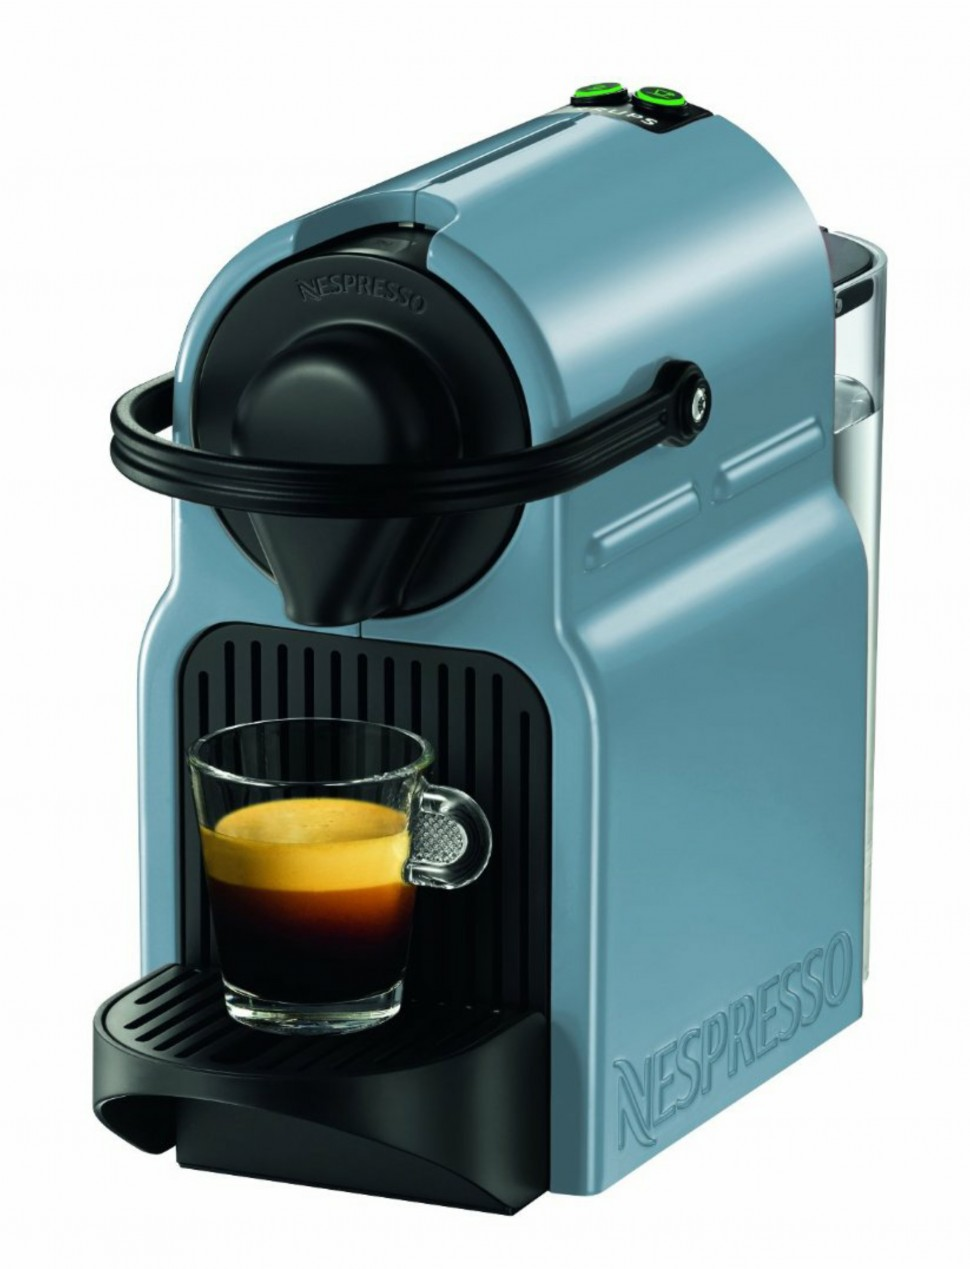 krups xn1004 nespresso inissia capsule coffee pod machine sky blue genuine new ebay. Black Bedroom Furniture Sets. Home Design Ideas